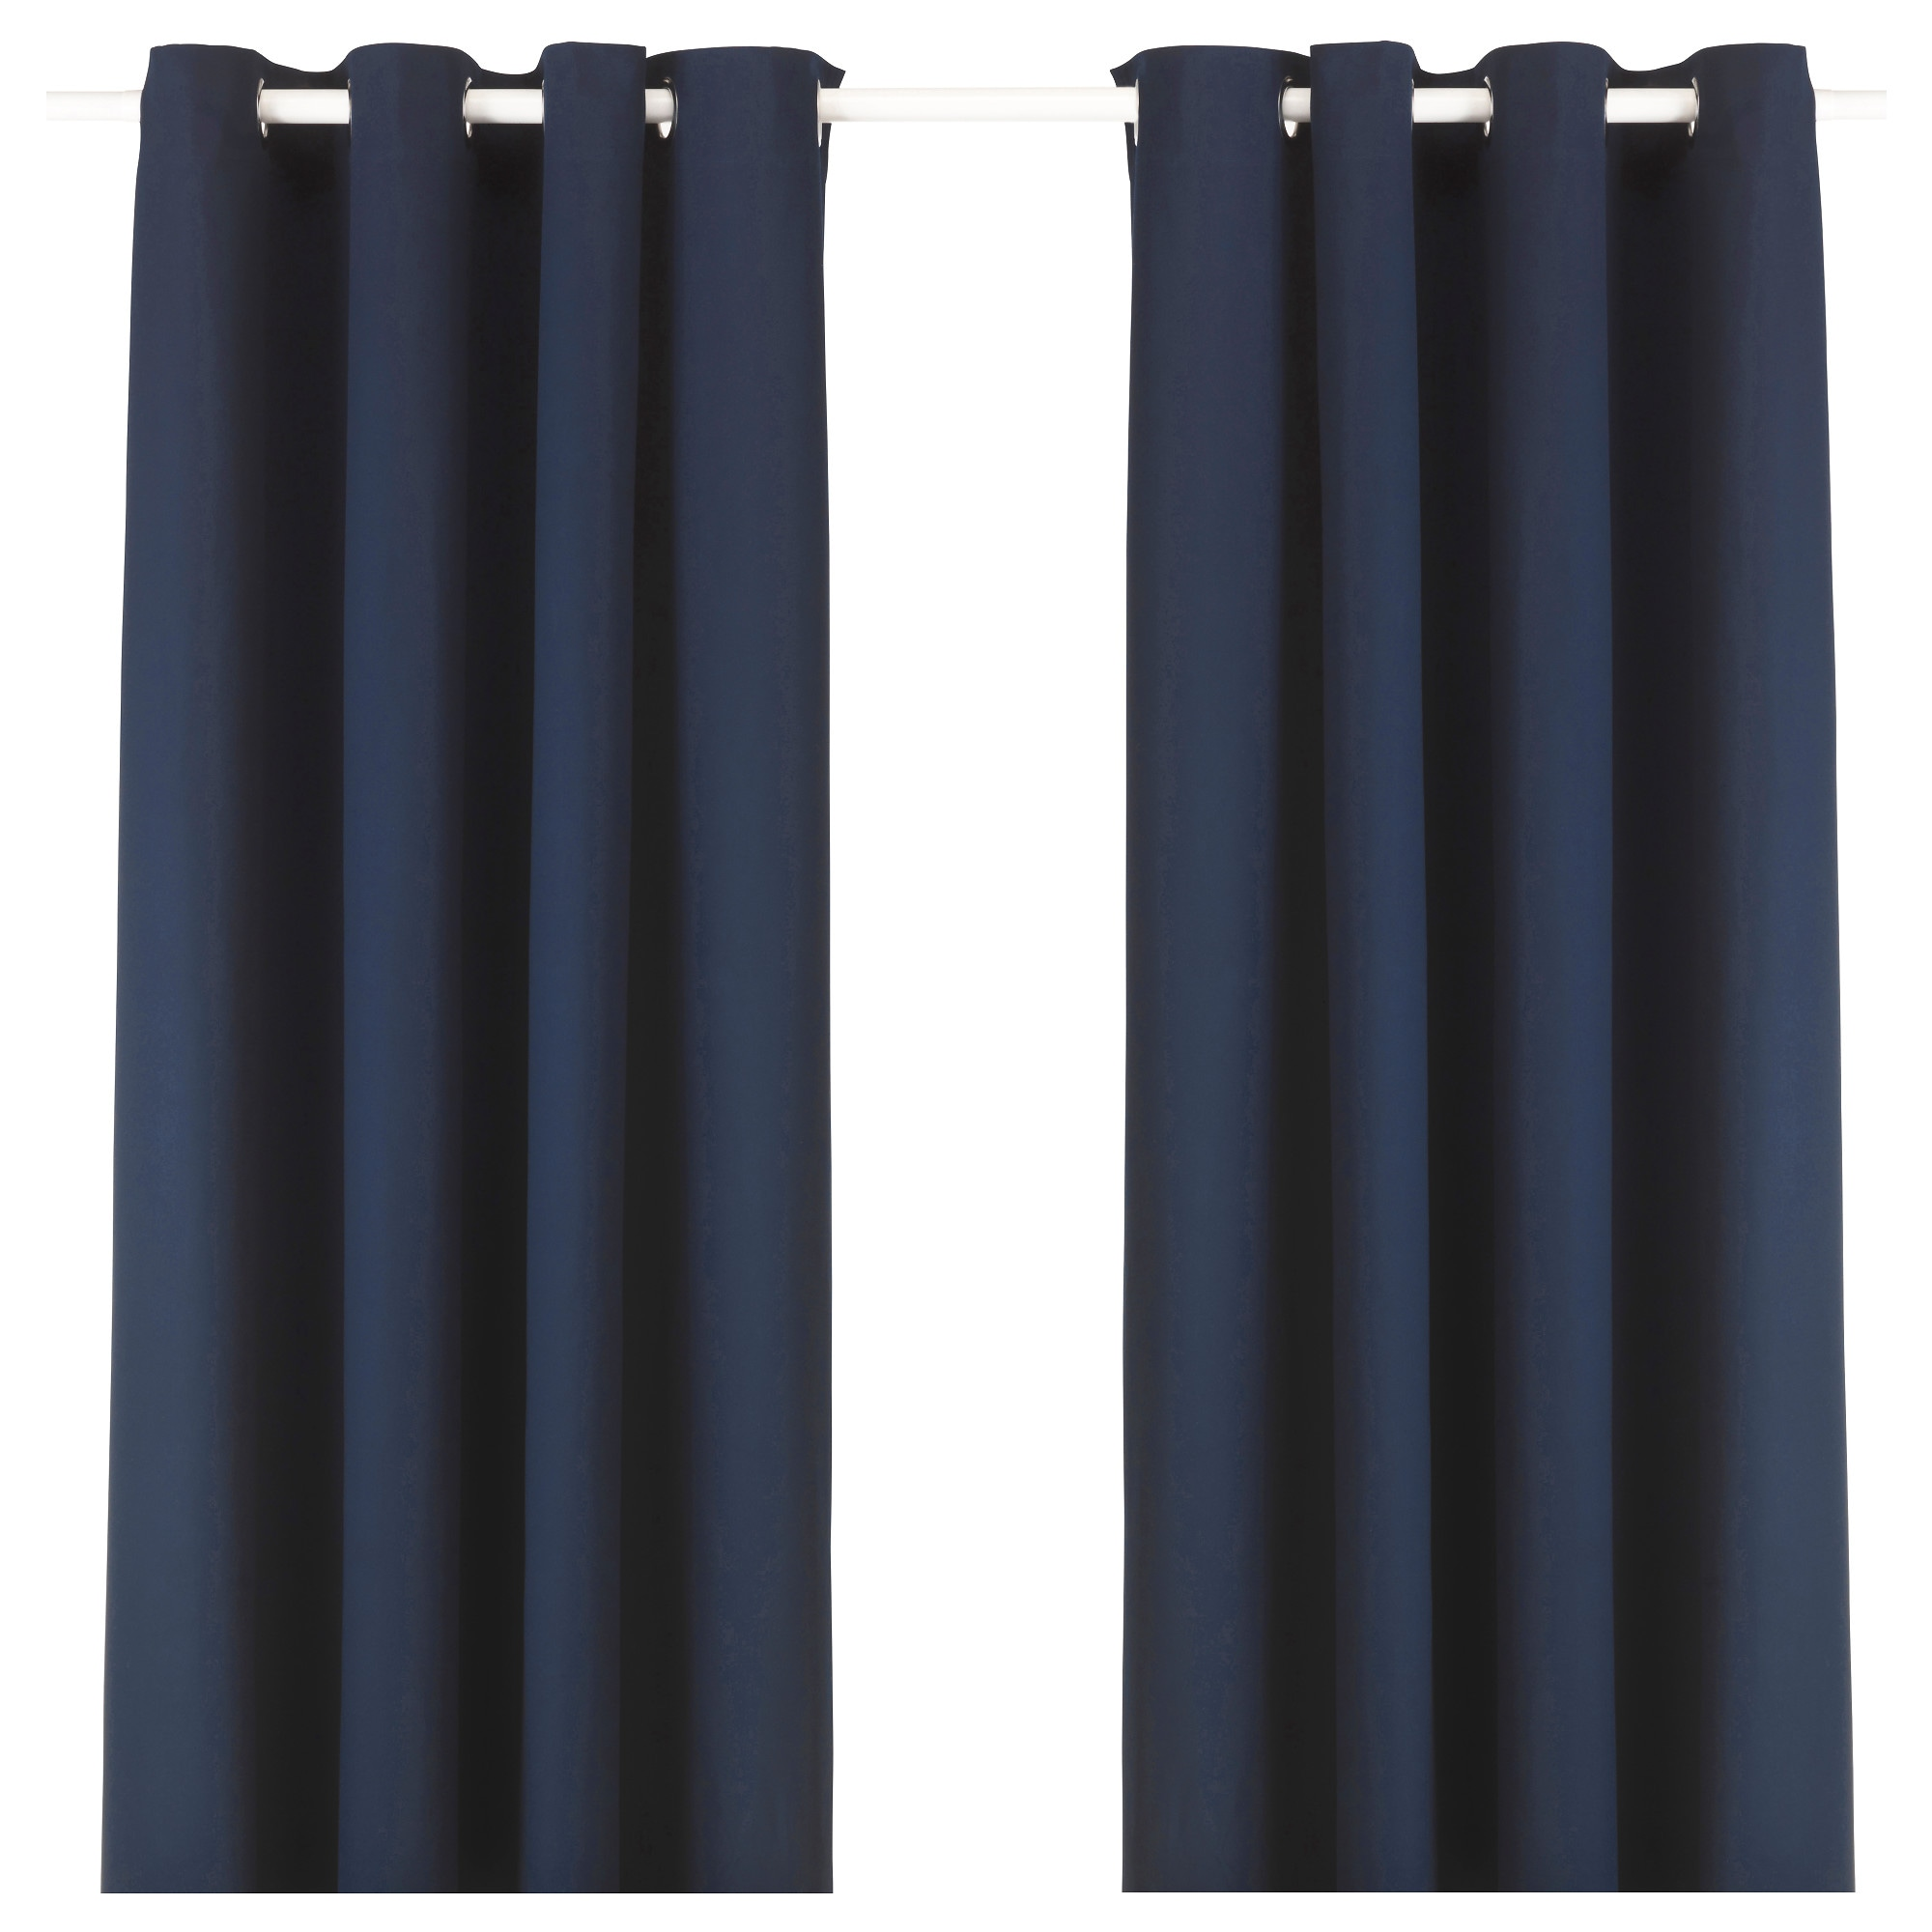 Curtains - Living Room & Bedroom Curtains - IKEA